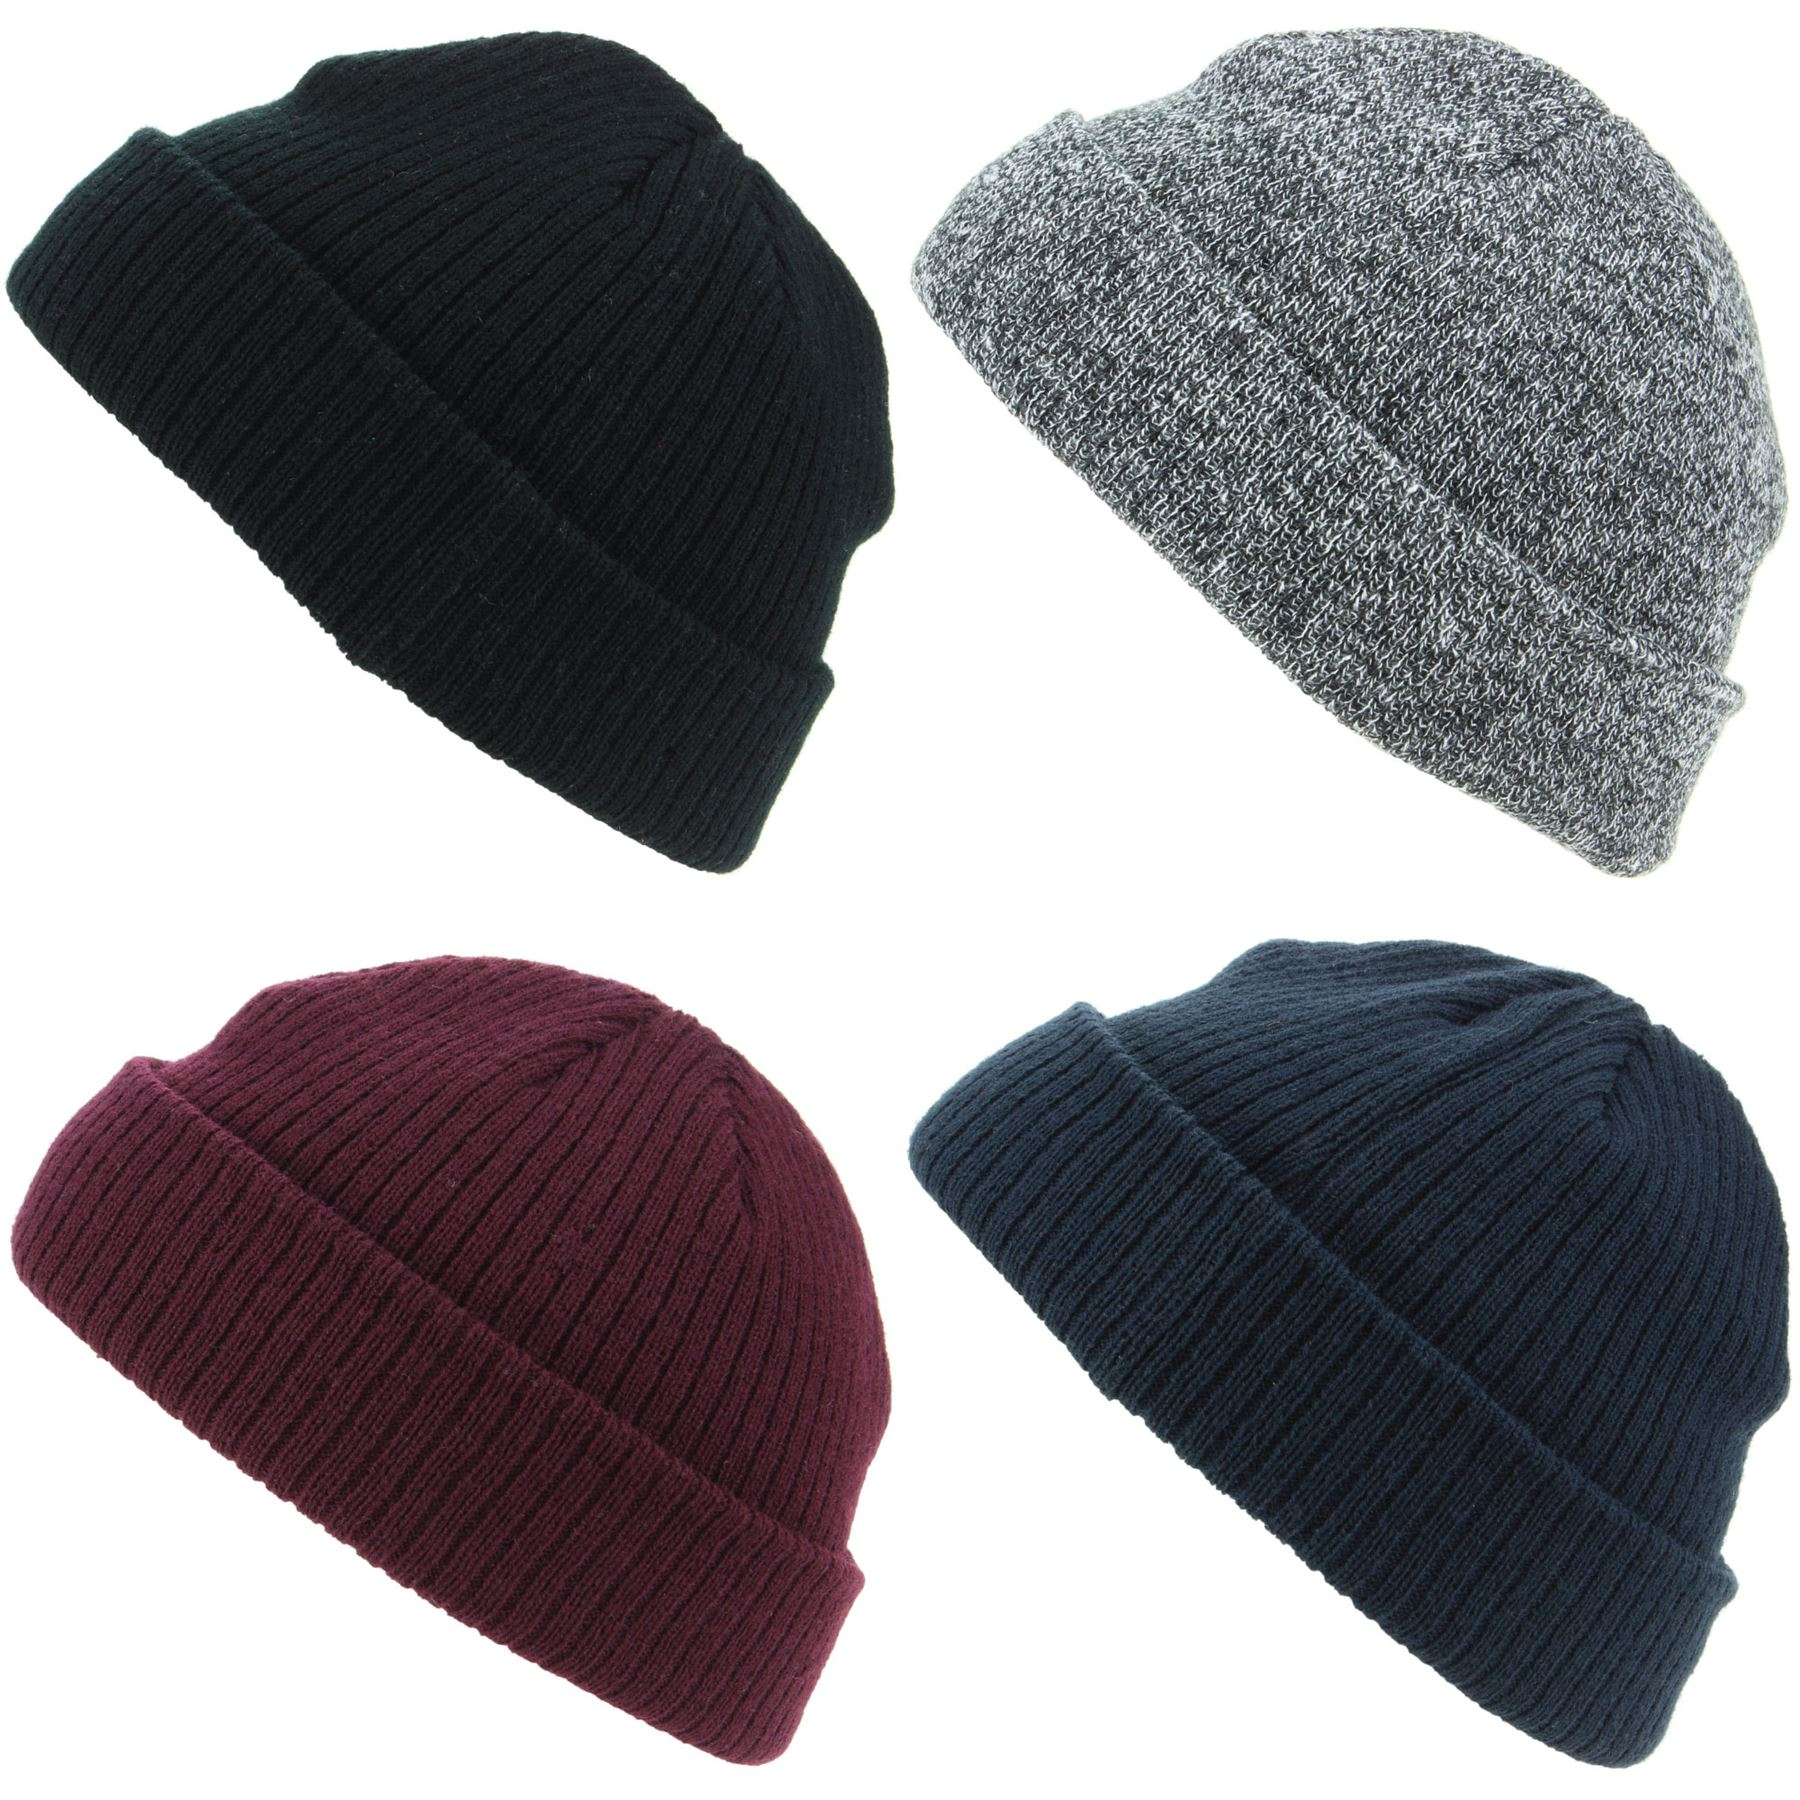 1076b6bff Details about Mini Beanie Hat Fishermans Cap Mens Womens Black Maroon Blue  Winter Warm